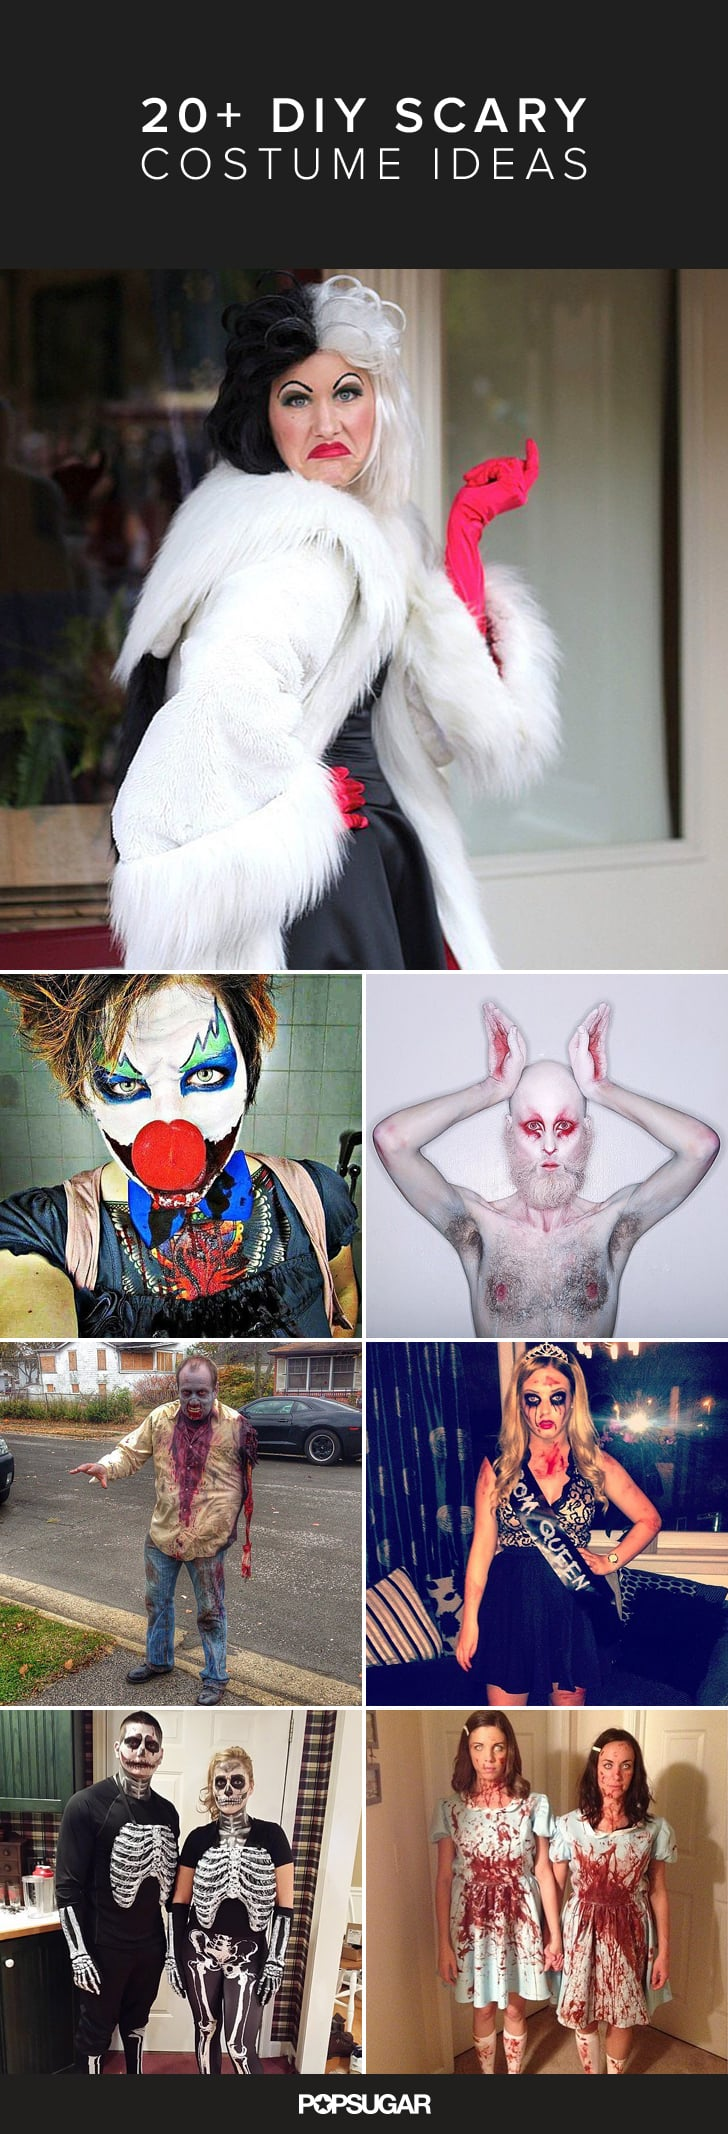 Scary Halloween Costumes Ideas For Adults.Diy Scary Halloween Costumes Popsugar Australia Smart Living